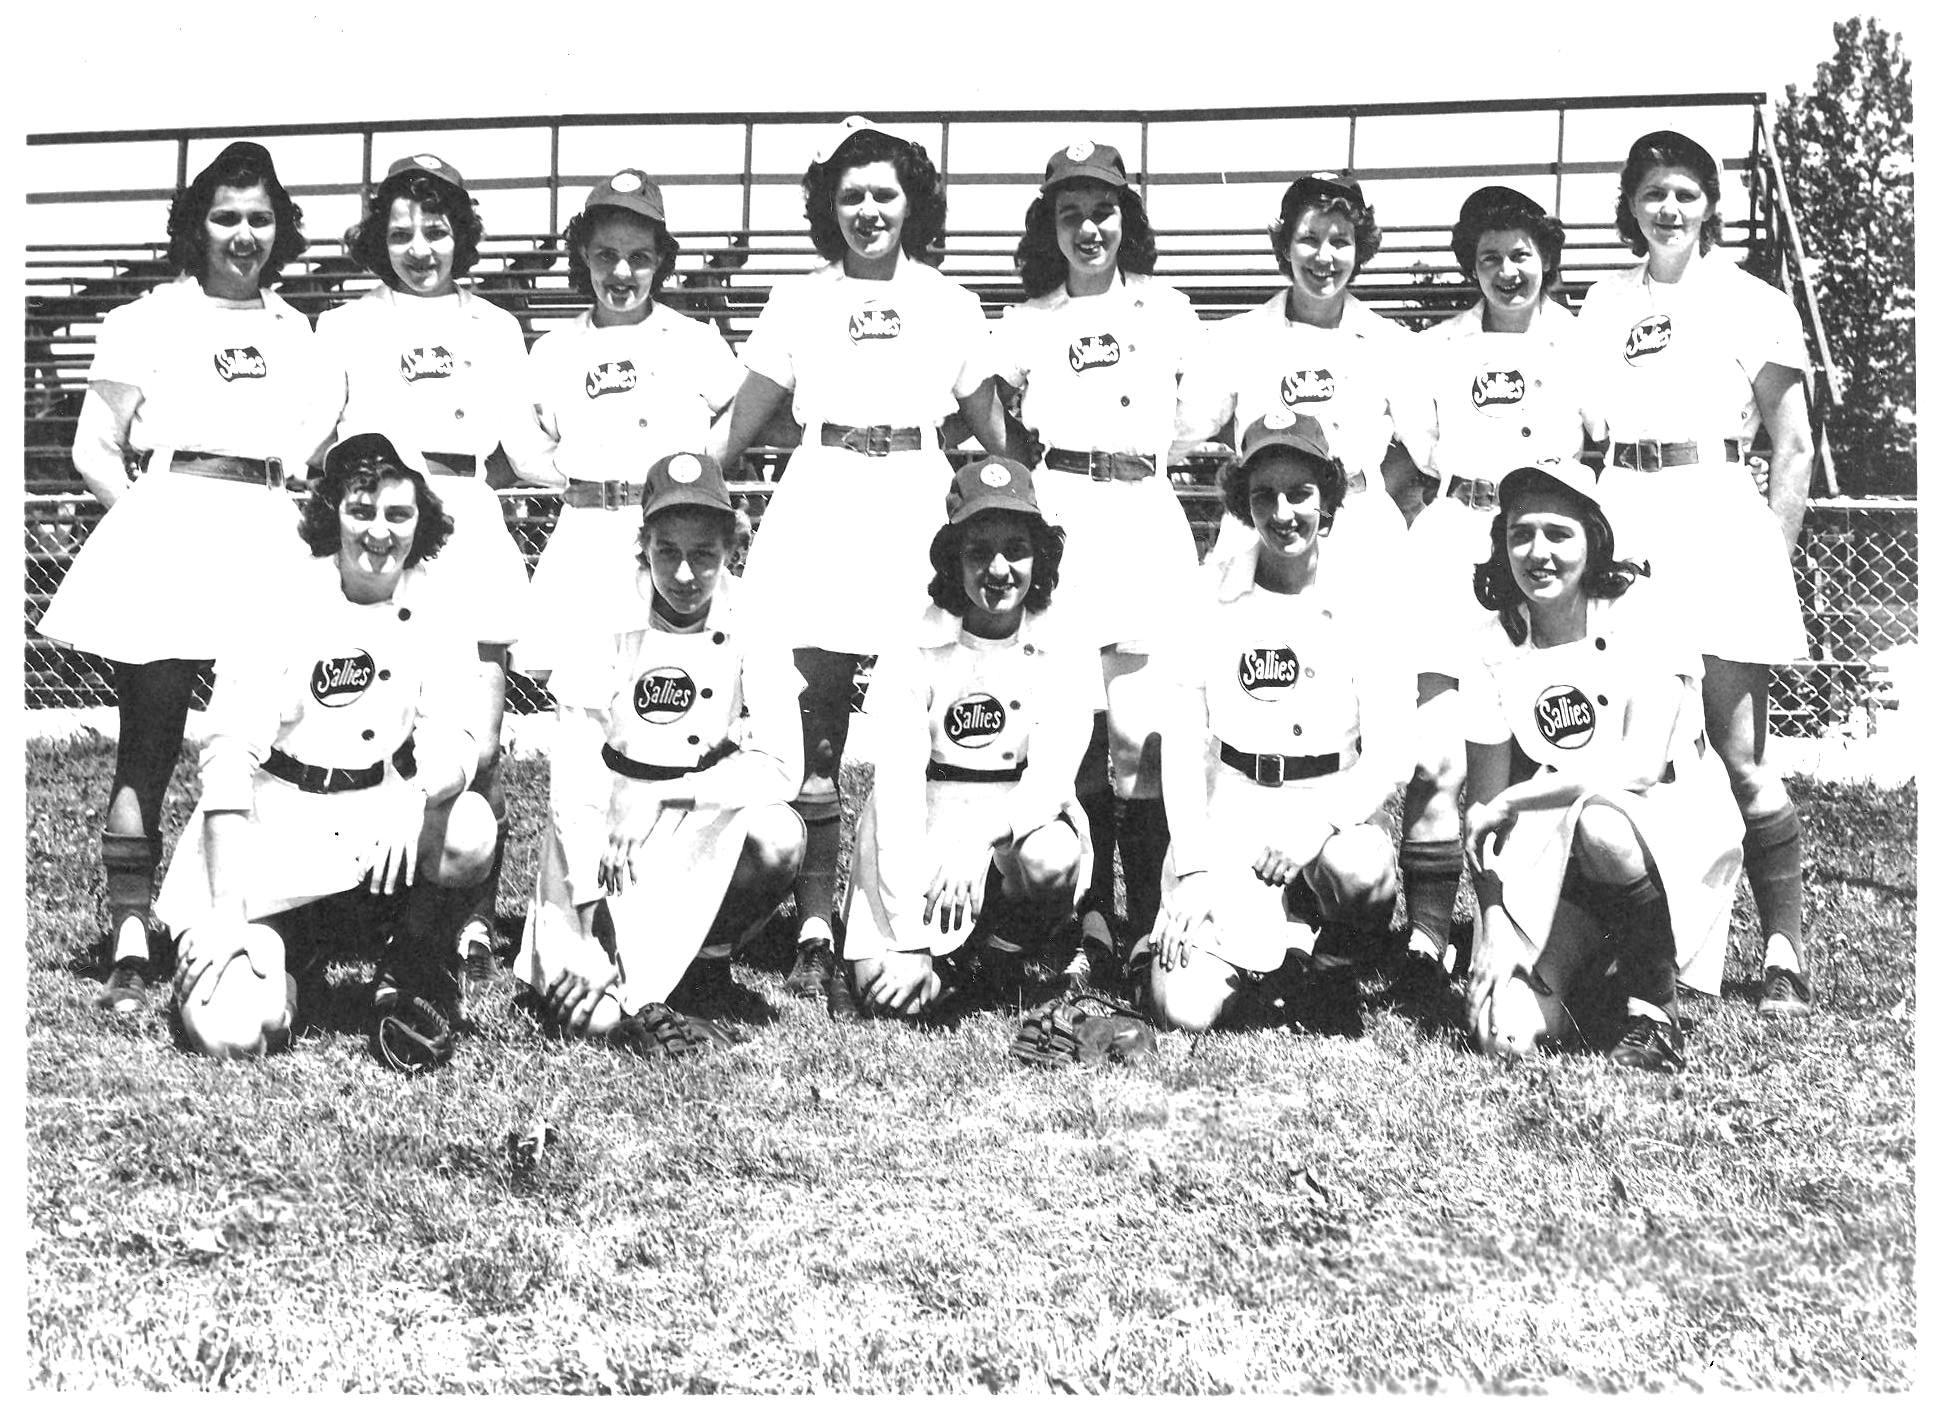 All American Girl Movie women's professional baseball | denver public library history